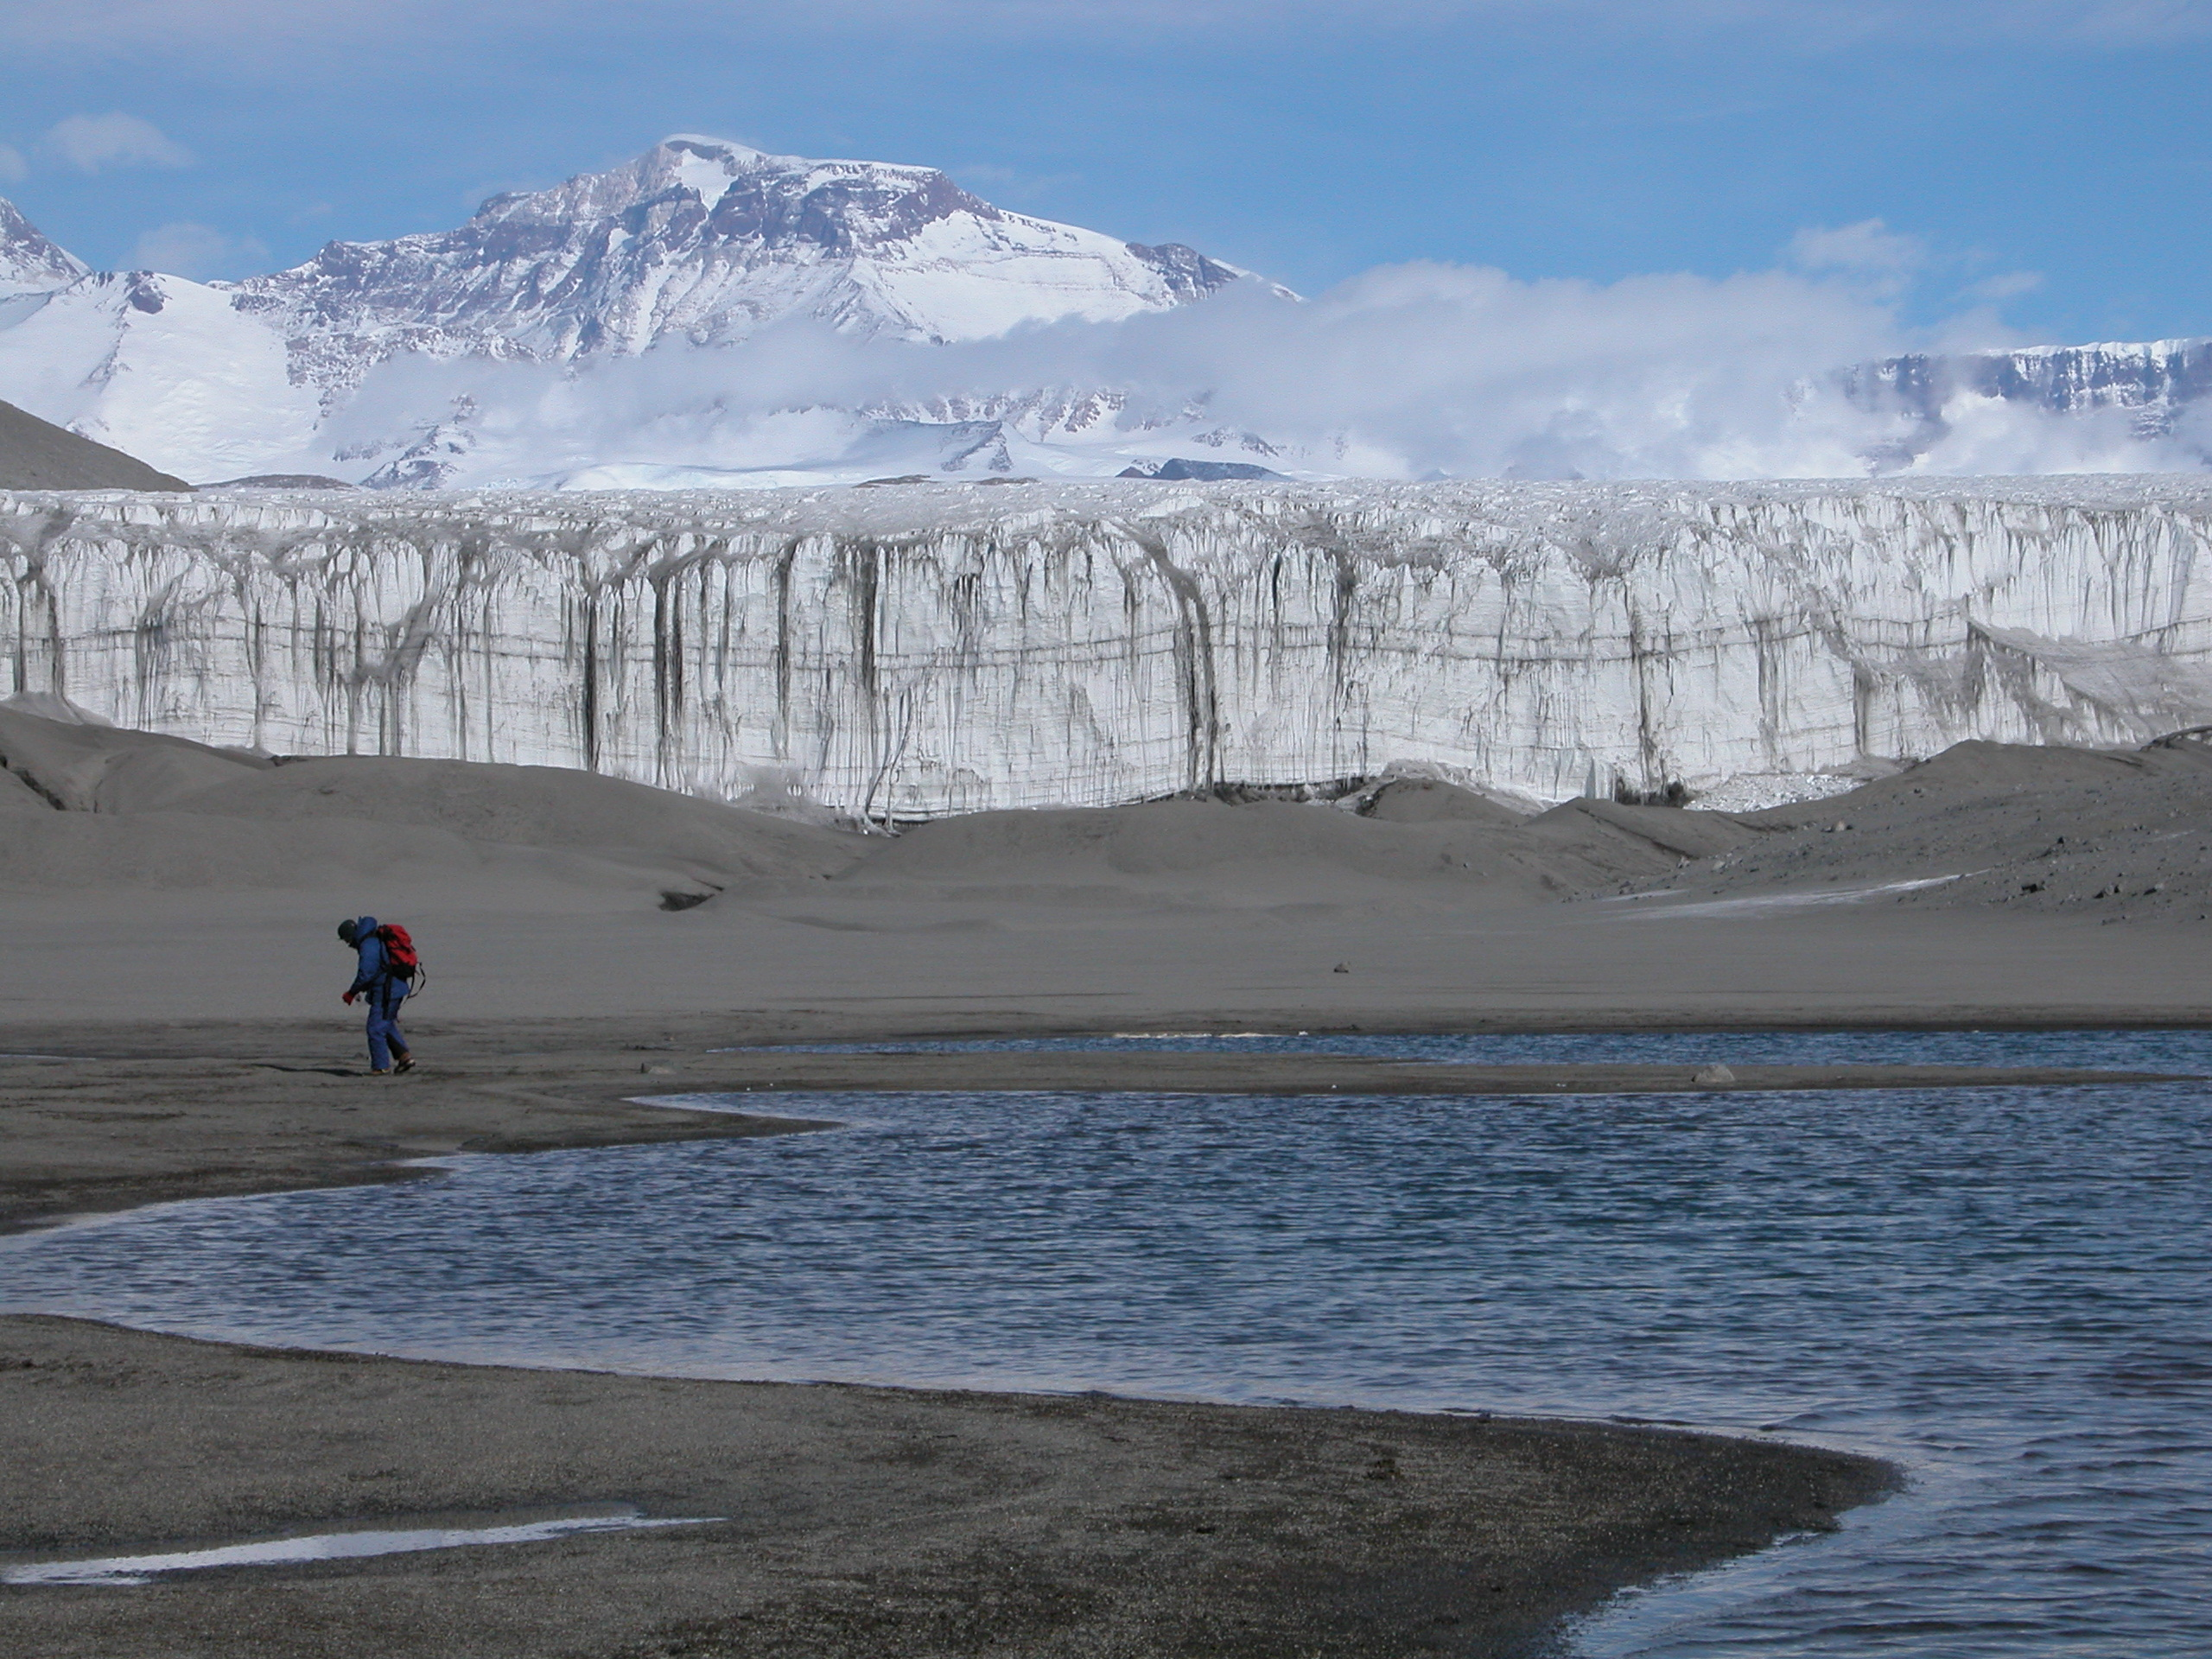 Soils on the shore of Lake Colleen, Antarctic Dry Valleys